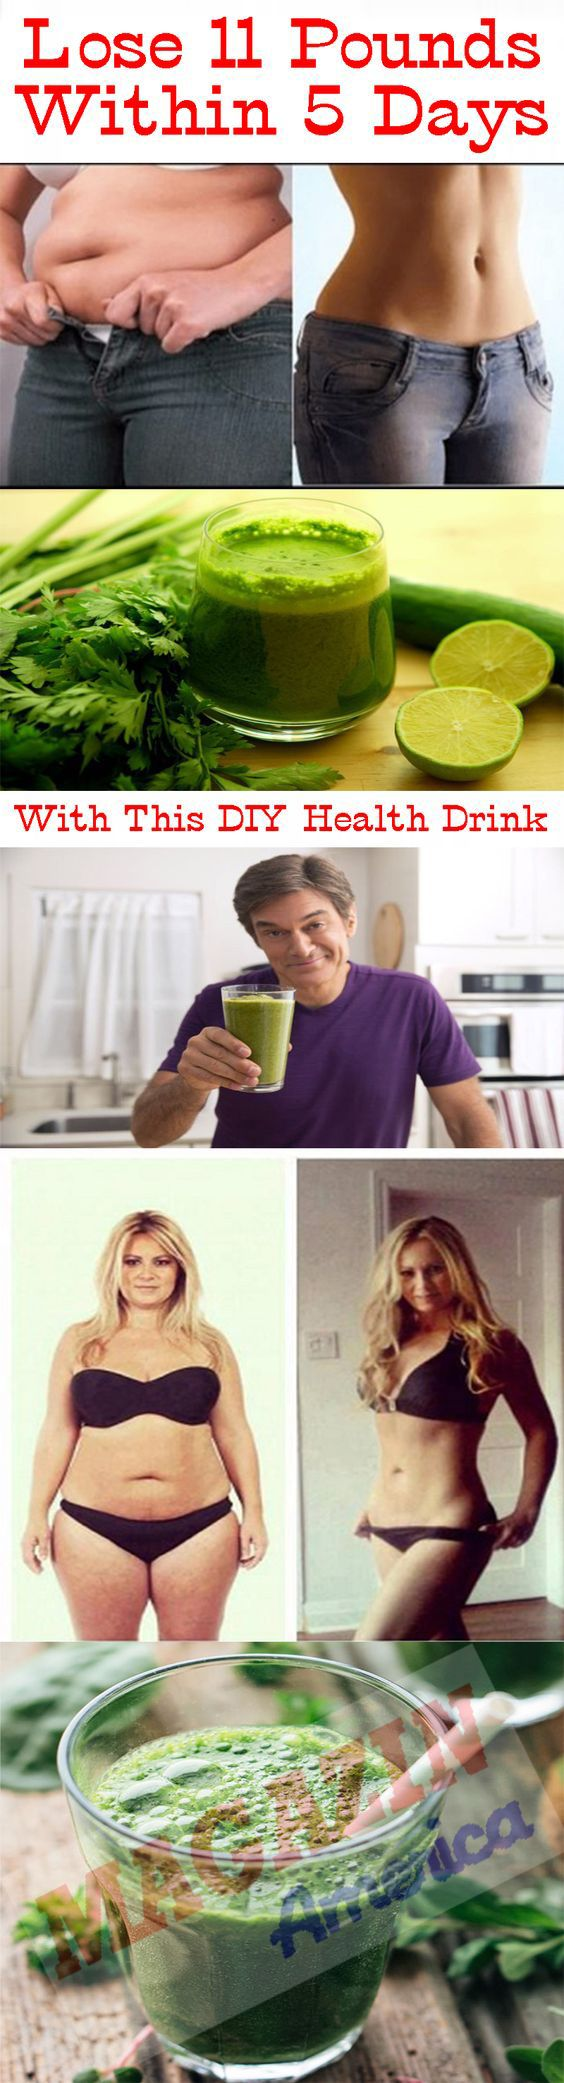 THIS DIY HEALTH DRINK HELPS TO LOSE 11 POUNDS WITHIN 5 DAYS